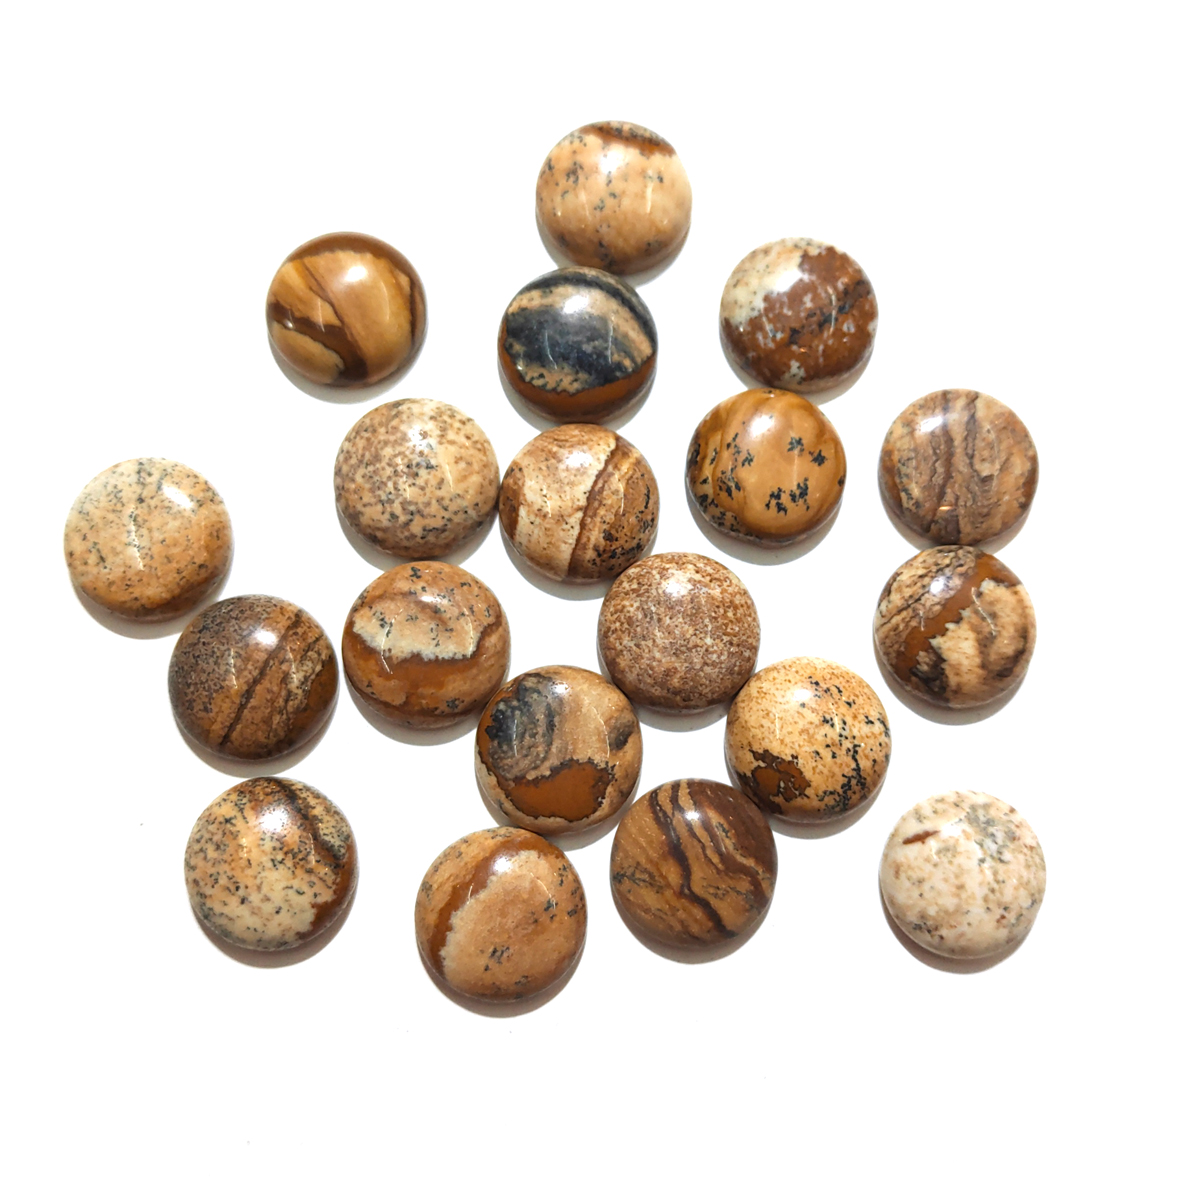 10 PCS Picture Stone Natural Stones Cabochon 12mm 14mm 16mm 18mm 20mm Round No Hole for Making Jewelry DIY